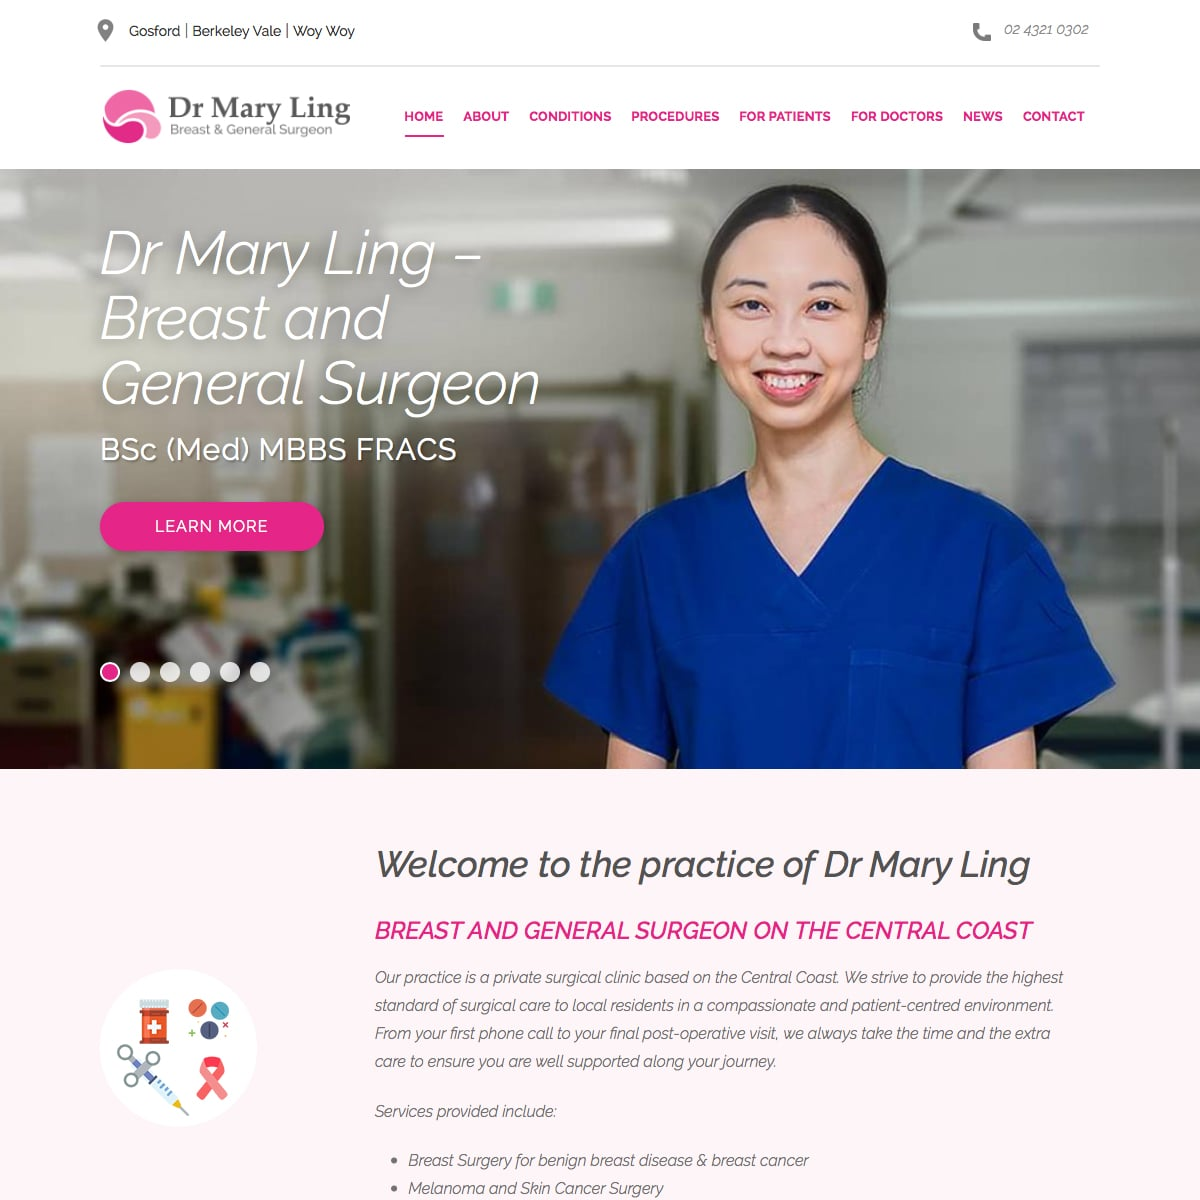 Dr Mary Ling - Home